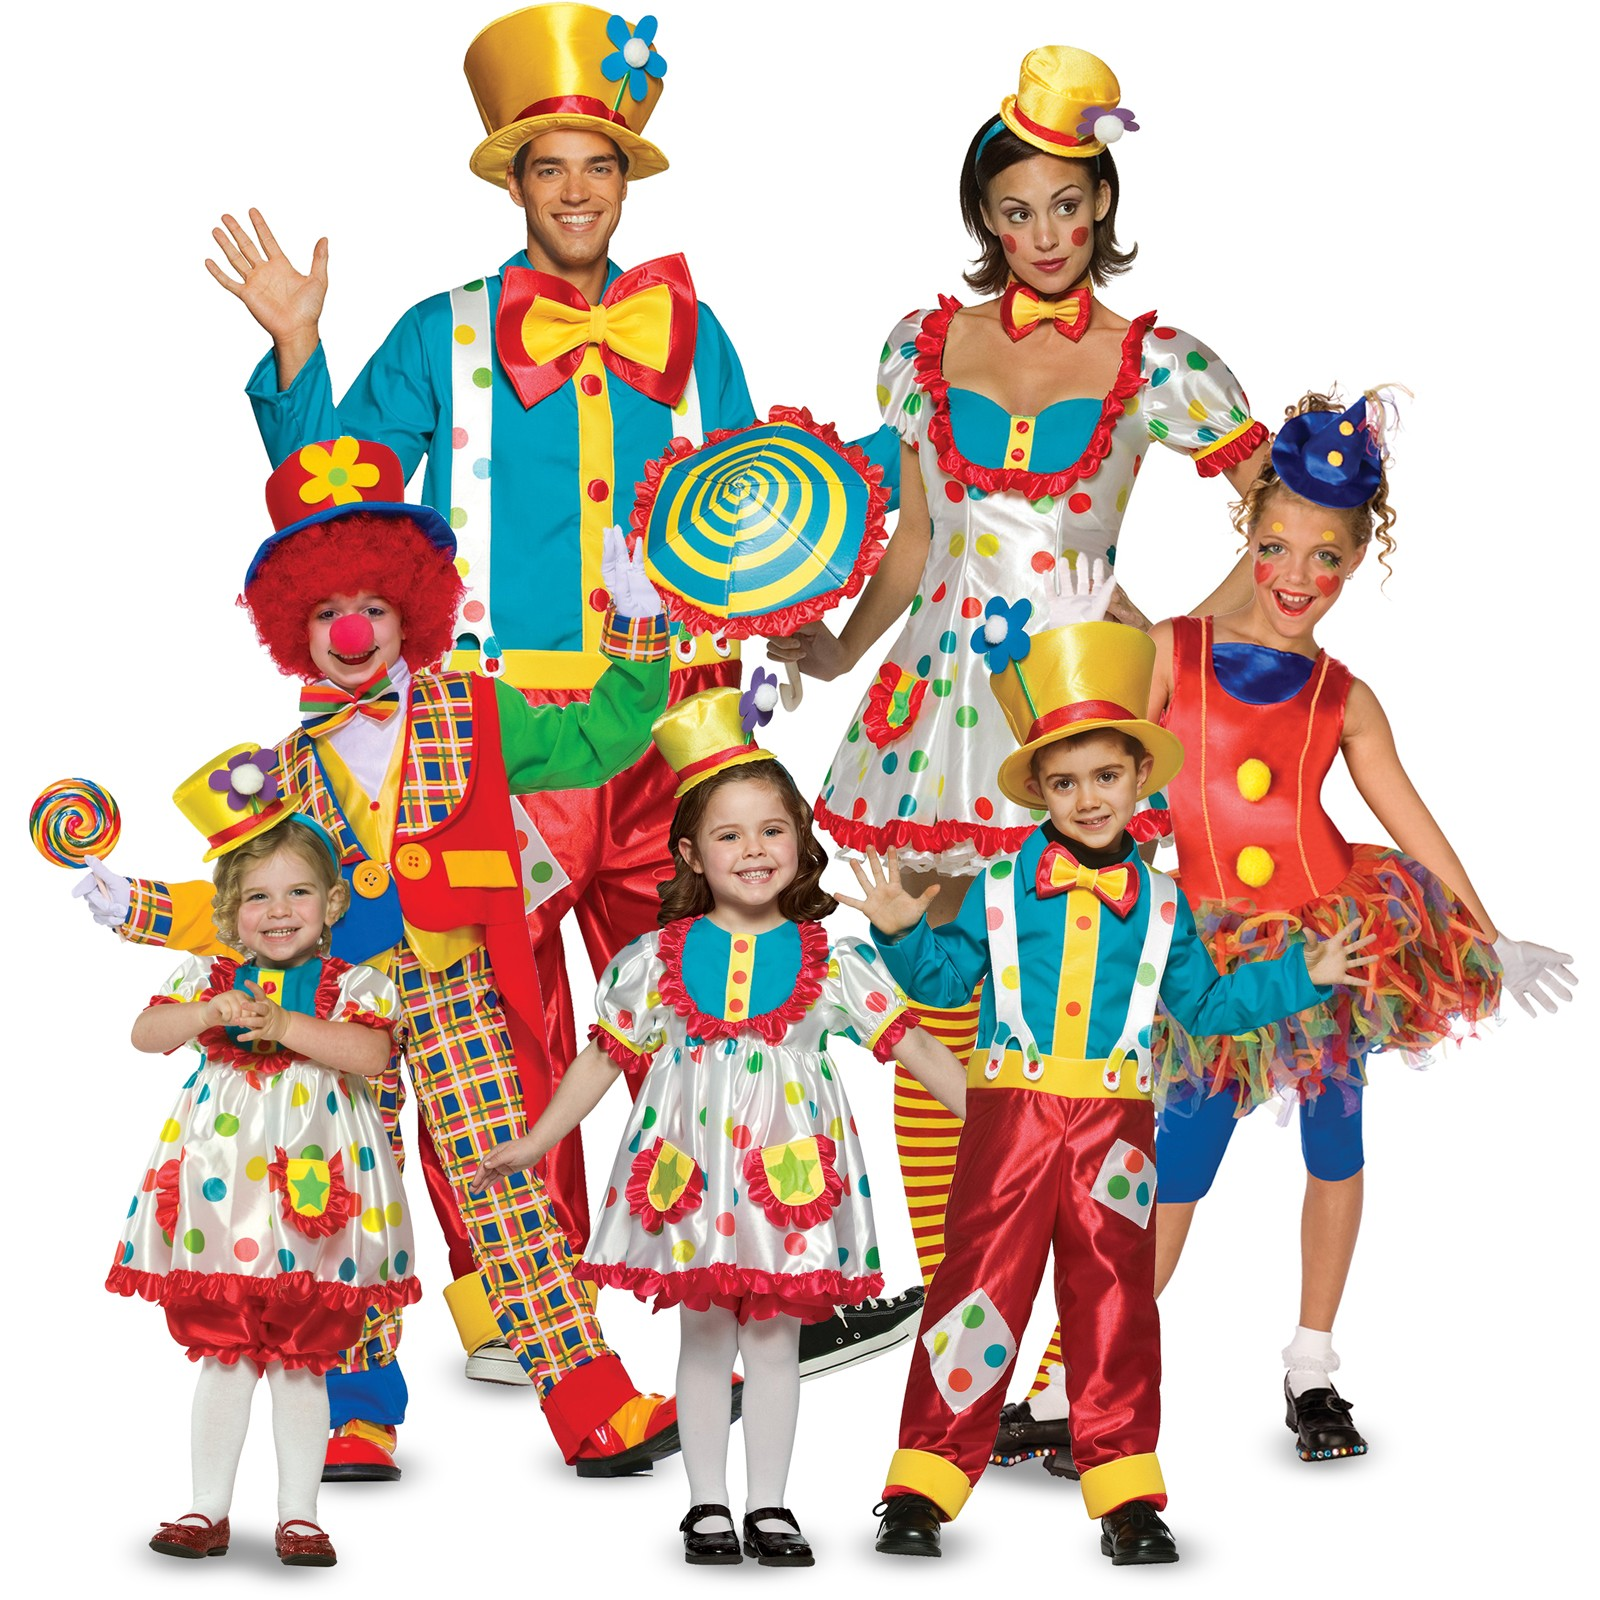 Cheap Circus Costumes are perfect for Halloween night, find high quality cheap Circus Costumes for Women on sale everyday at AMIClubwear. Looming for a sexy Circus Costume then look no more, from ringleaders to the lion we have all the sexy Circus Costumes you could want.